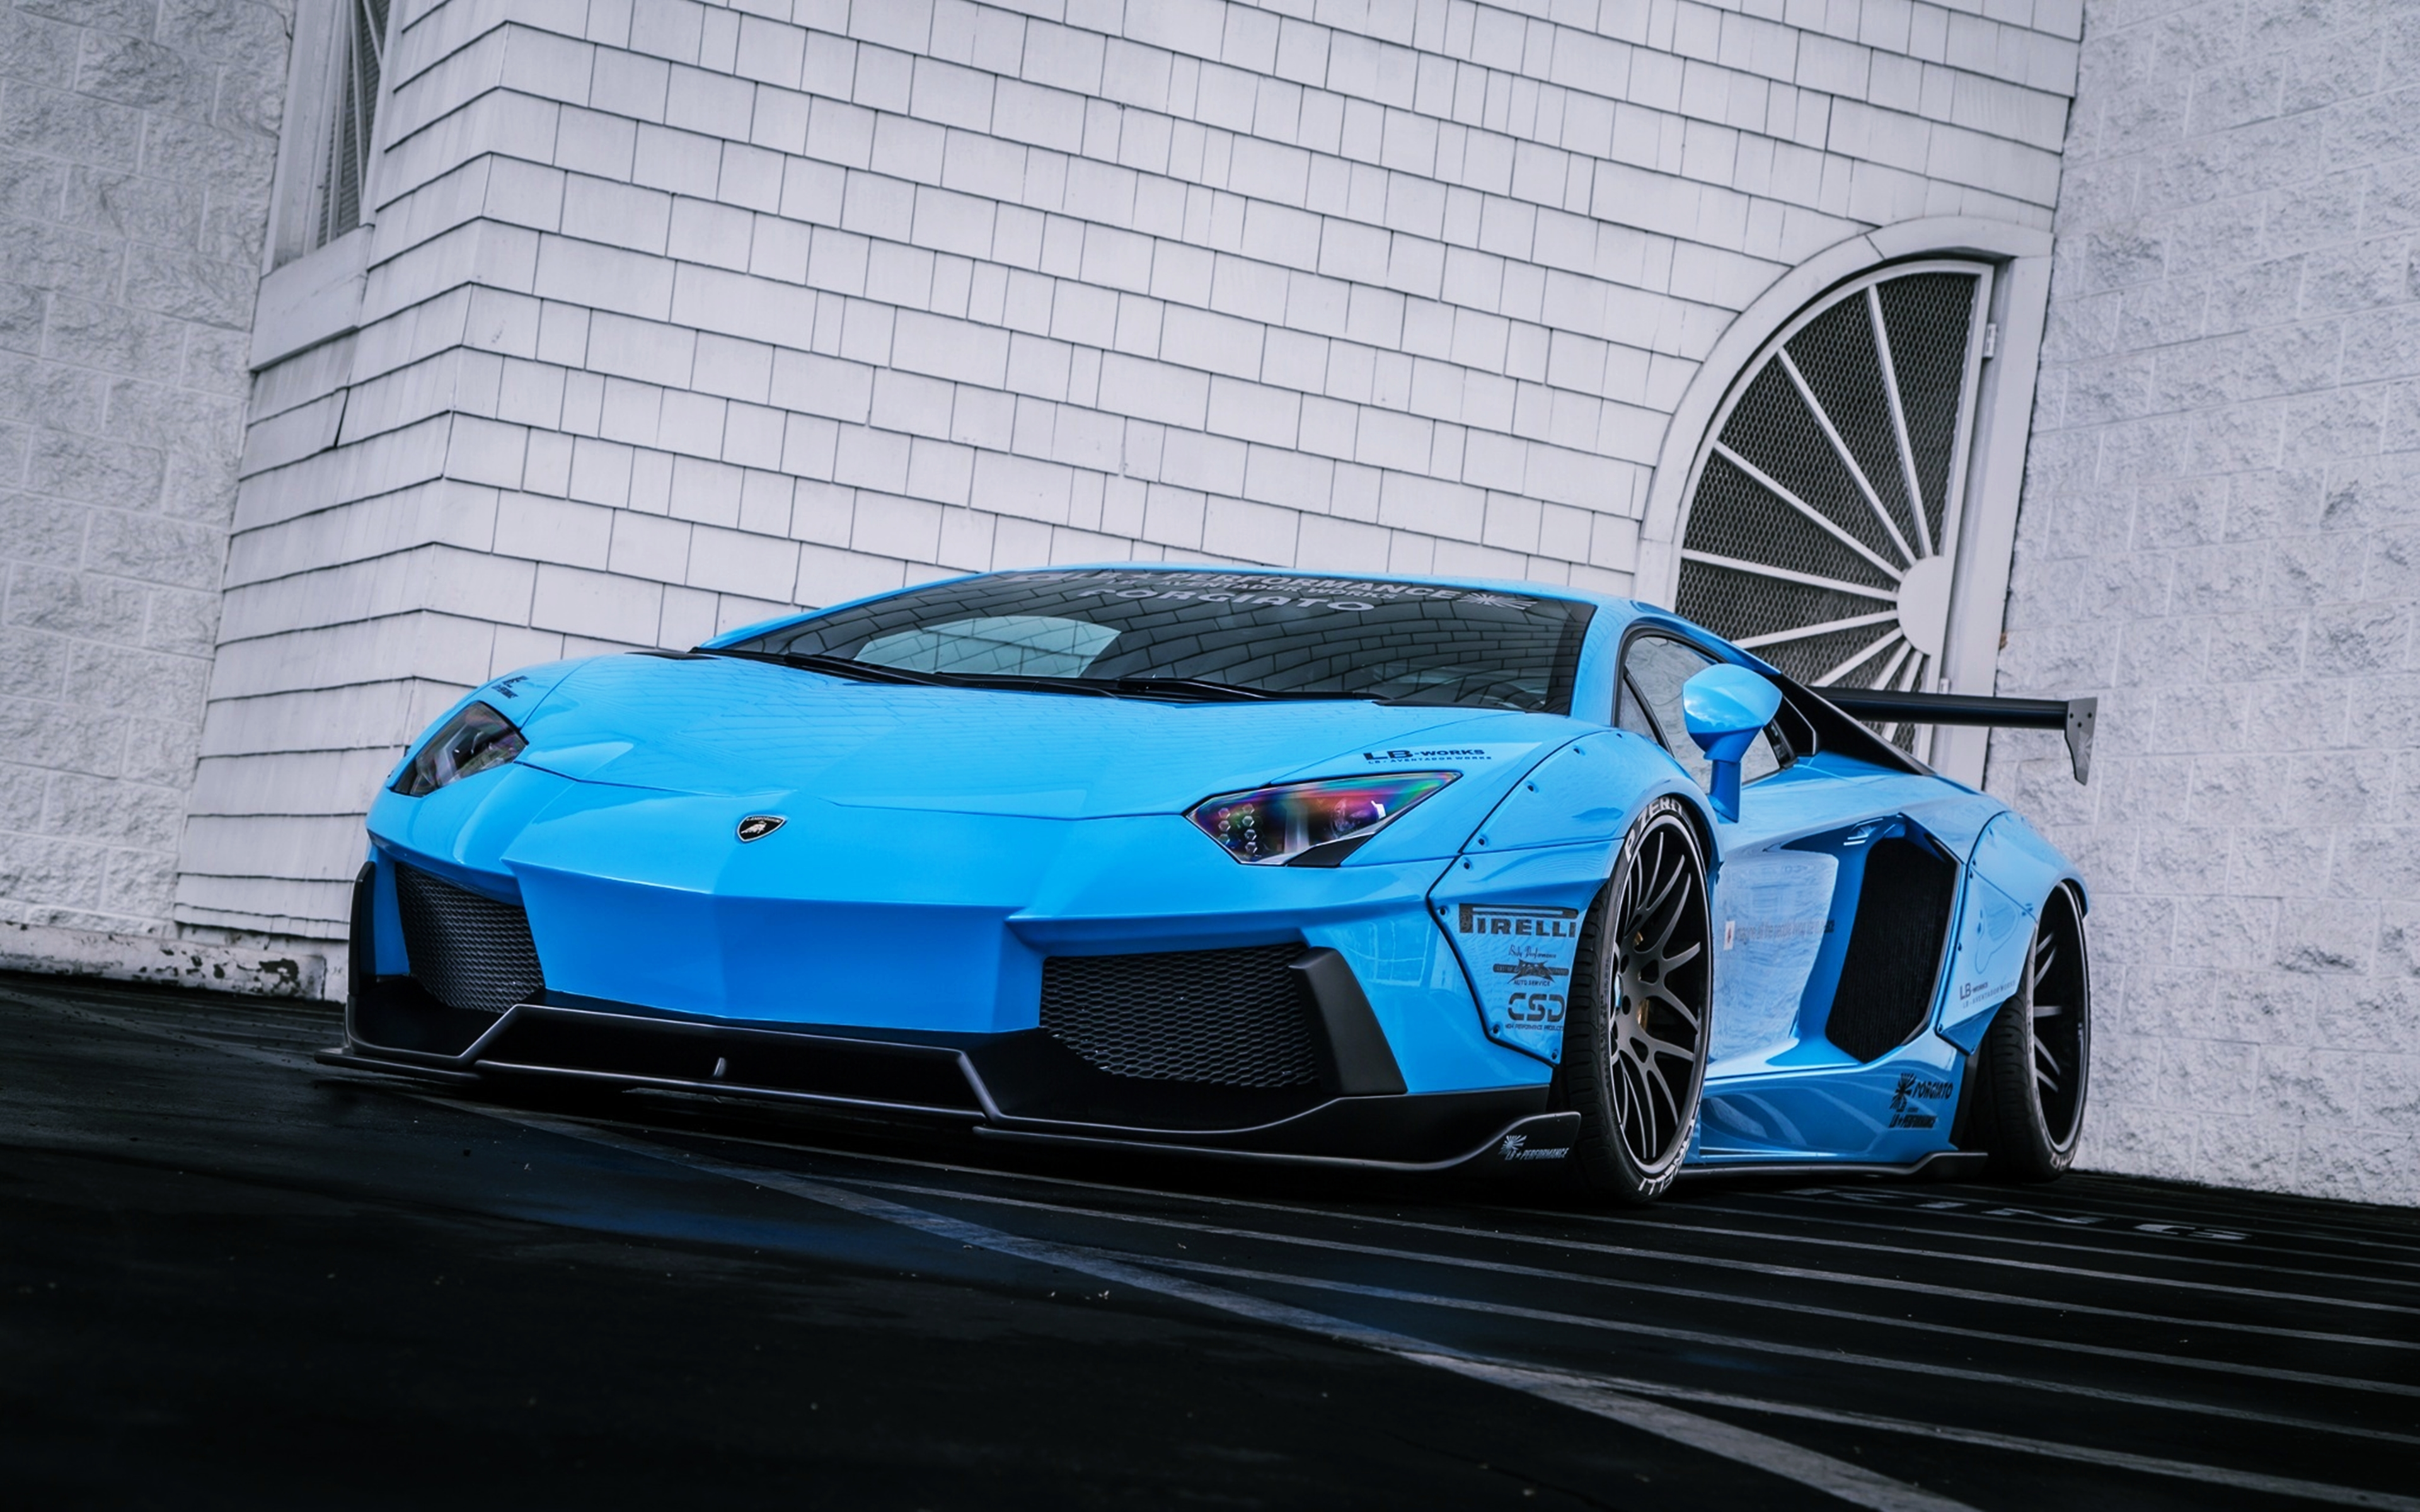 Lamborghini Aventador Lp 700 4 4k Ultra Hd Wallpaper Background